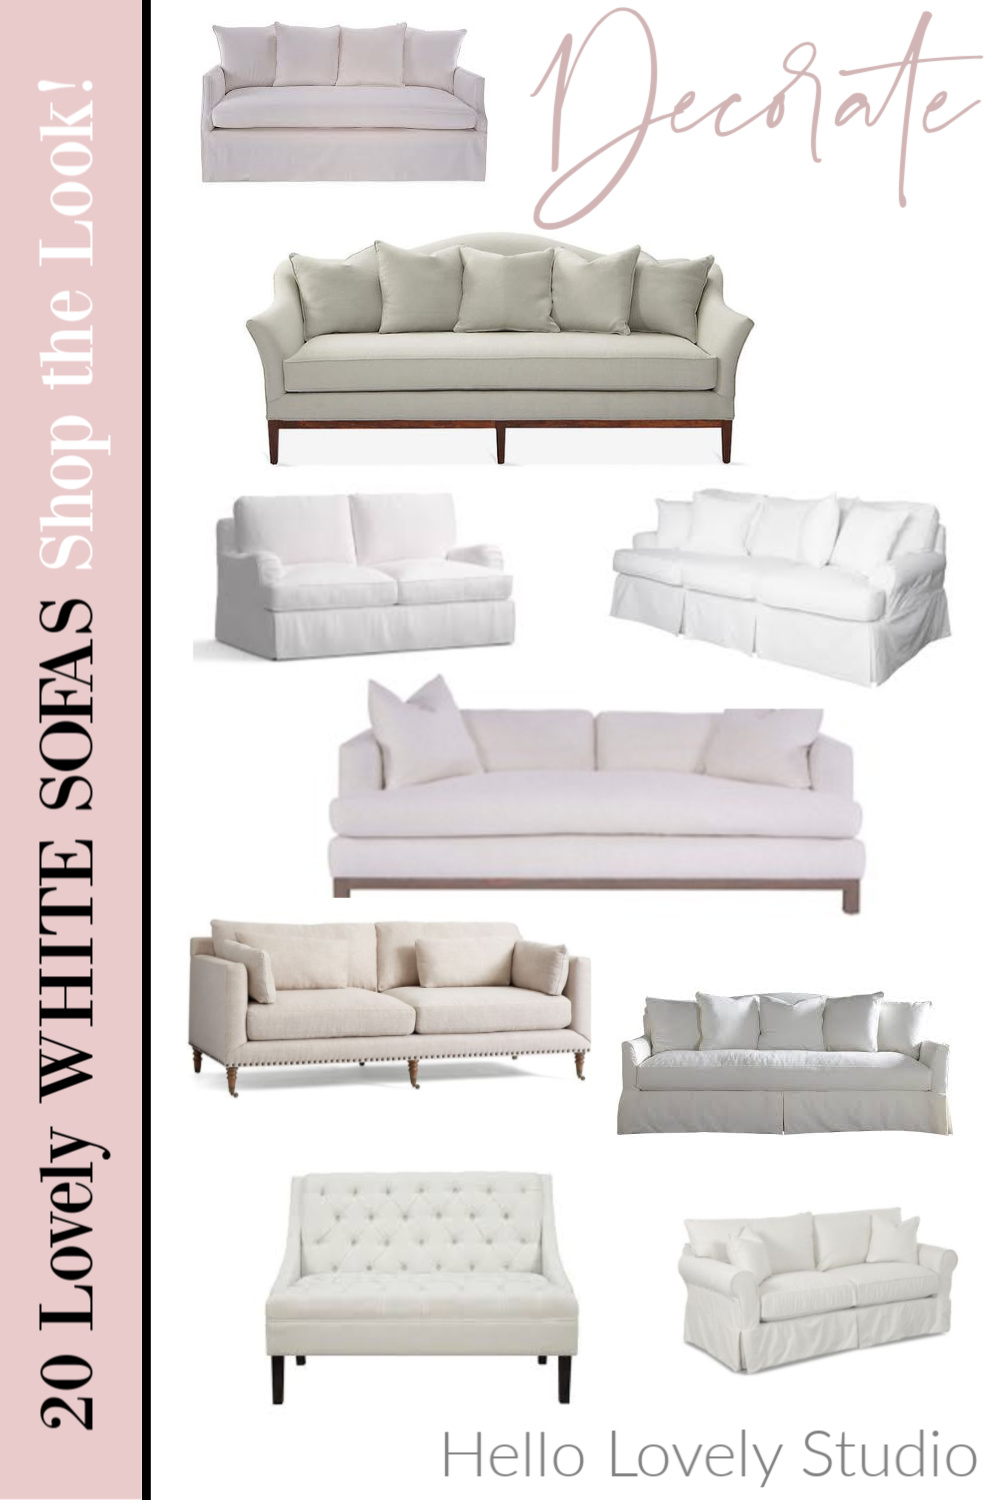 20 lovely white sofas shop the look hello lovely studio. #sofas #whitesofas #furniture #interiordesign #hellolovelystudio